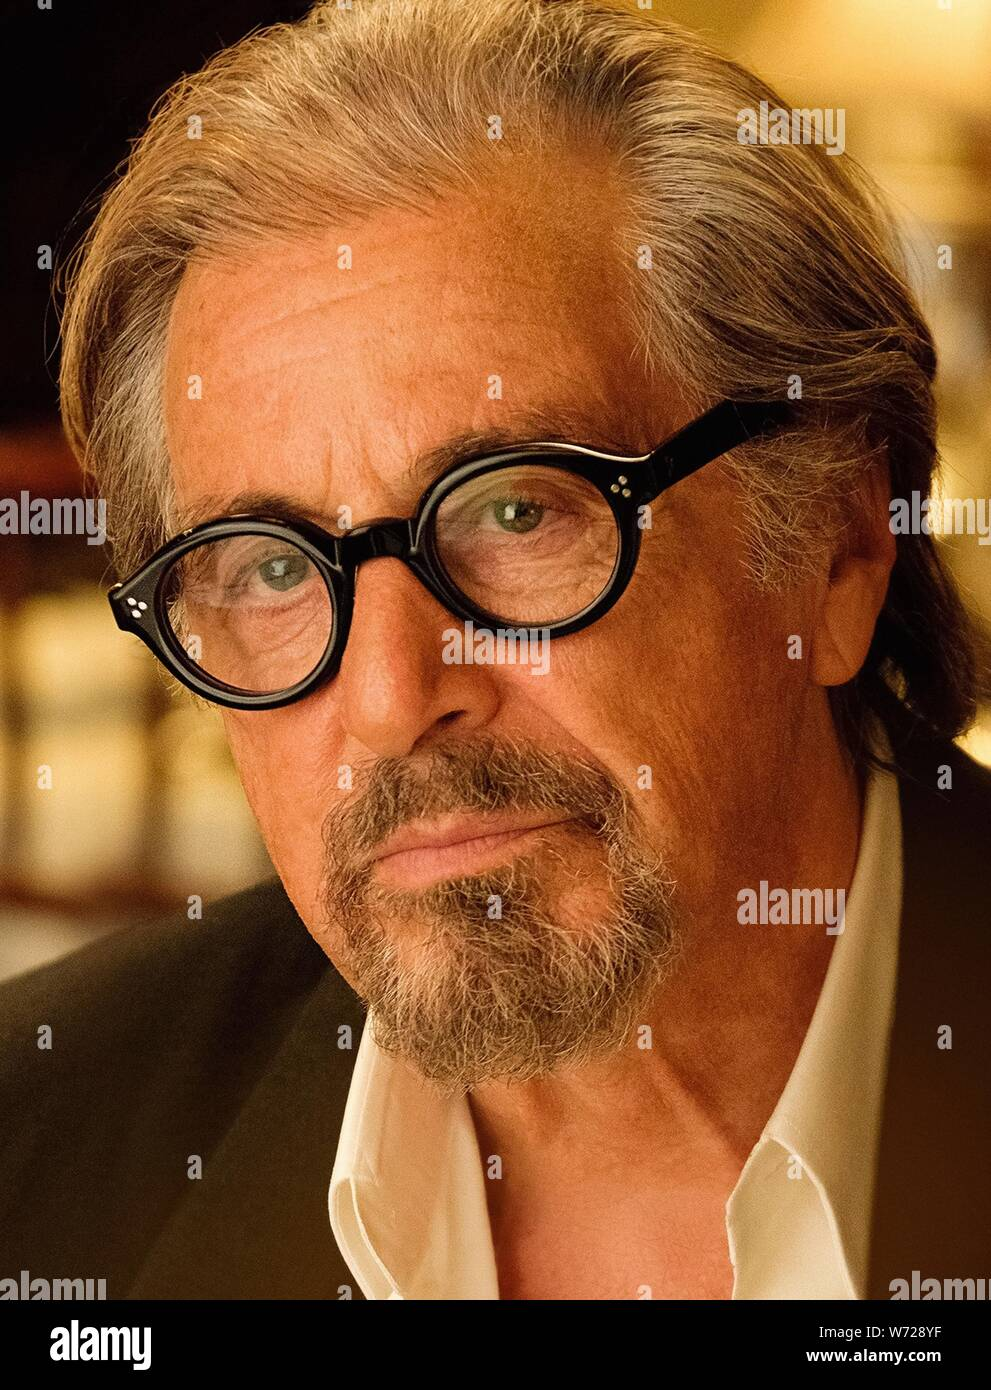 Al Pacino In Once Upon A Time In Hollywood 2019 Directed By Quentin Tarantino Credit Heyday Films Album Stock Photo Alamy